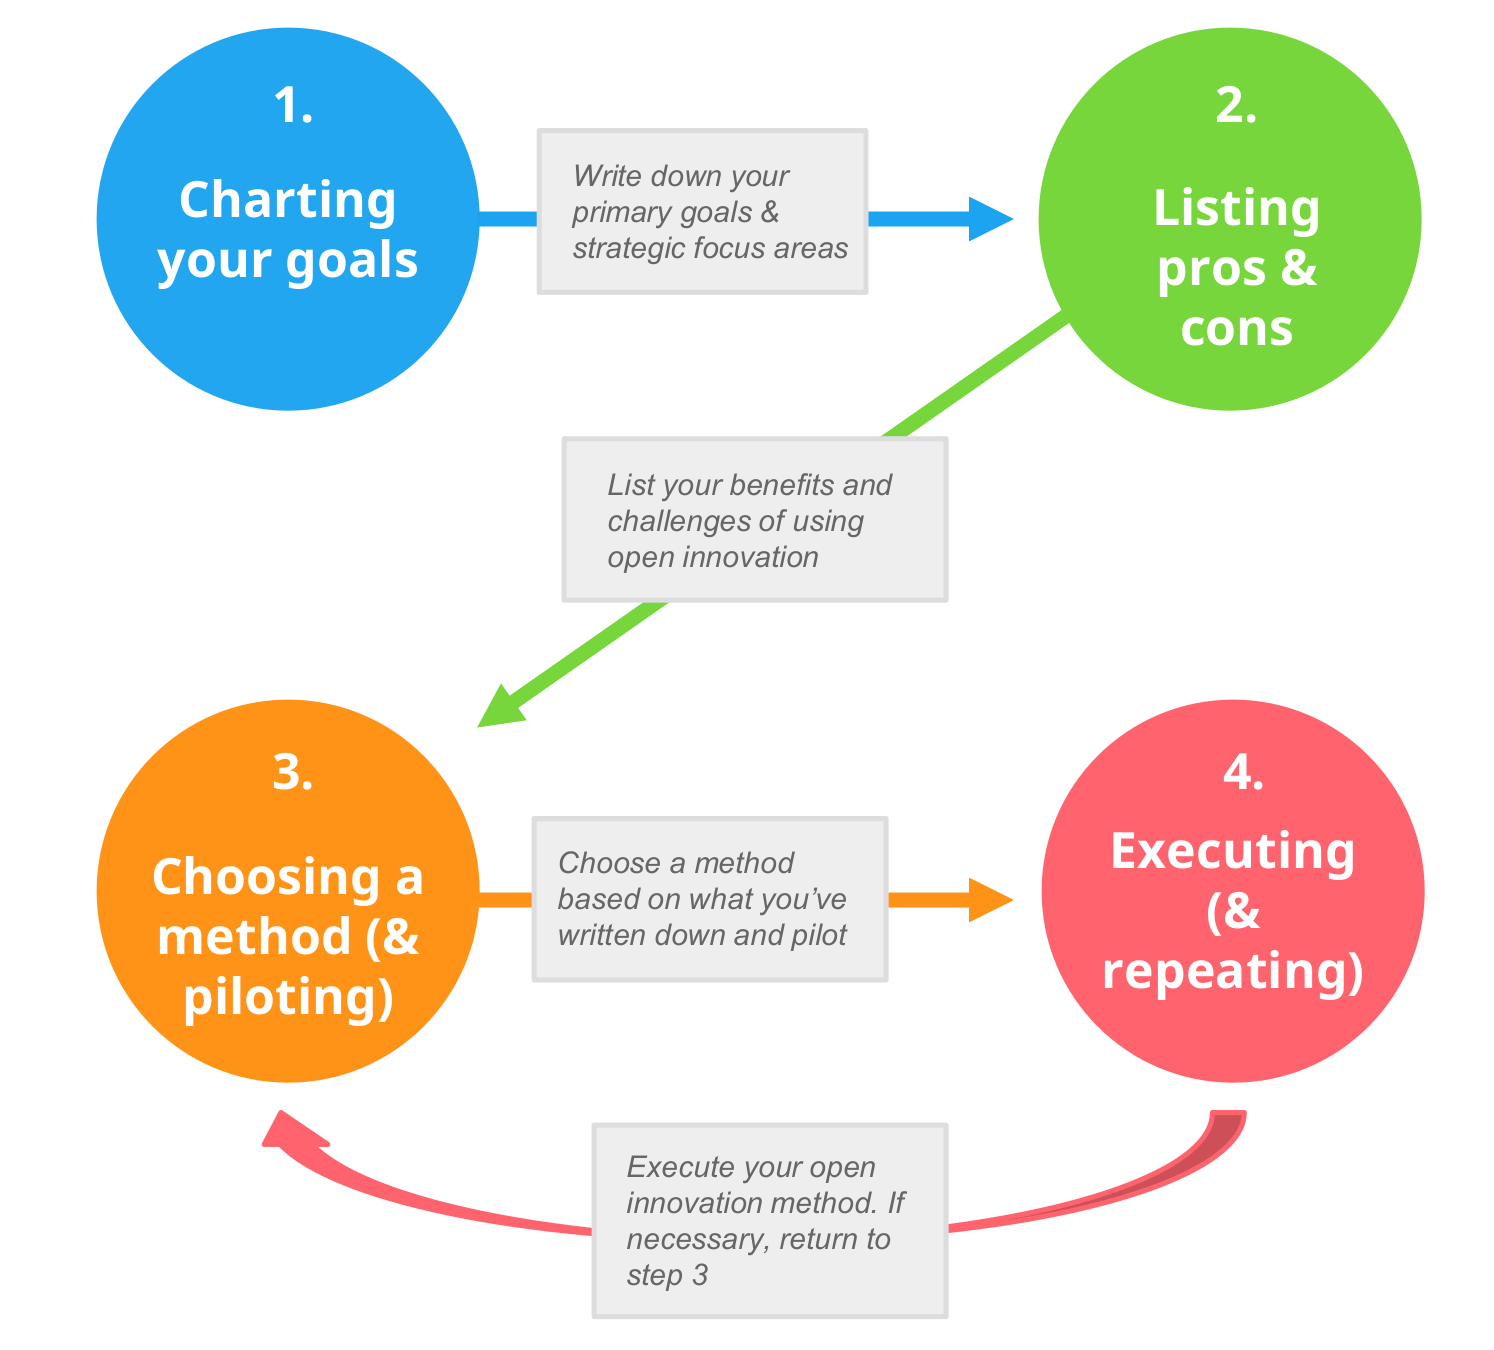 A process for choosing an open innovation method